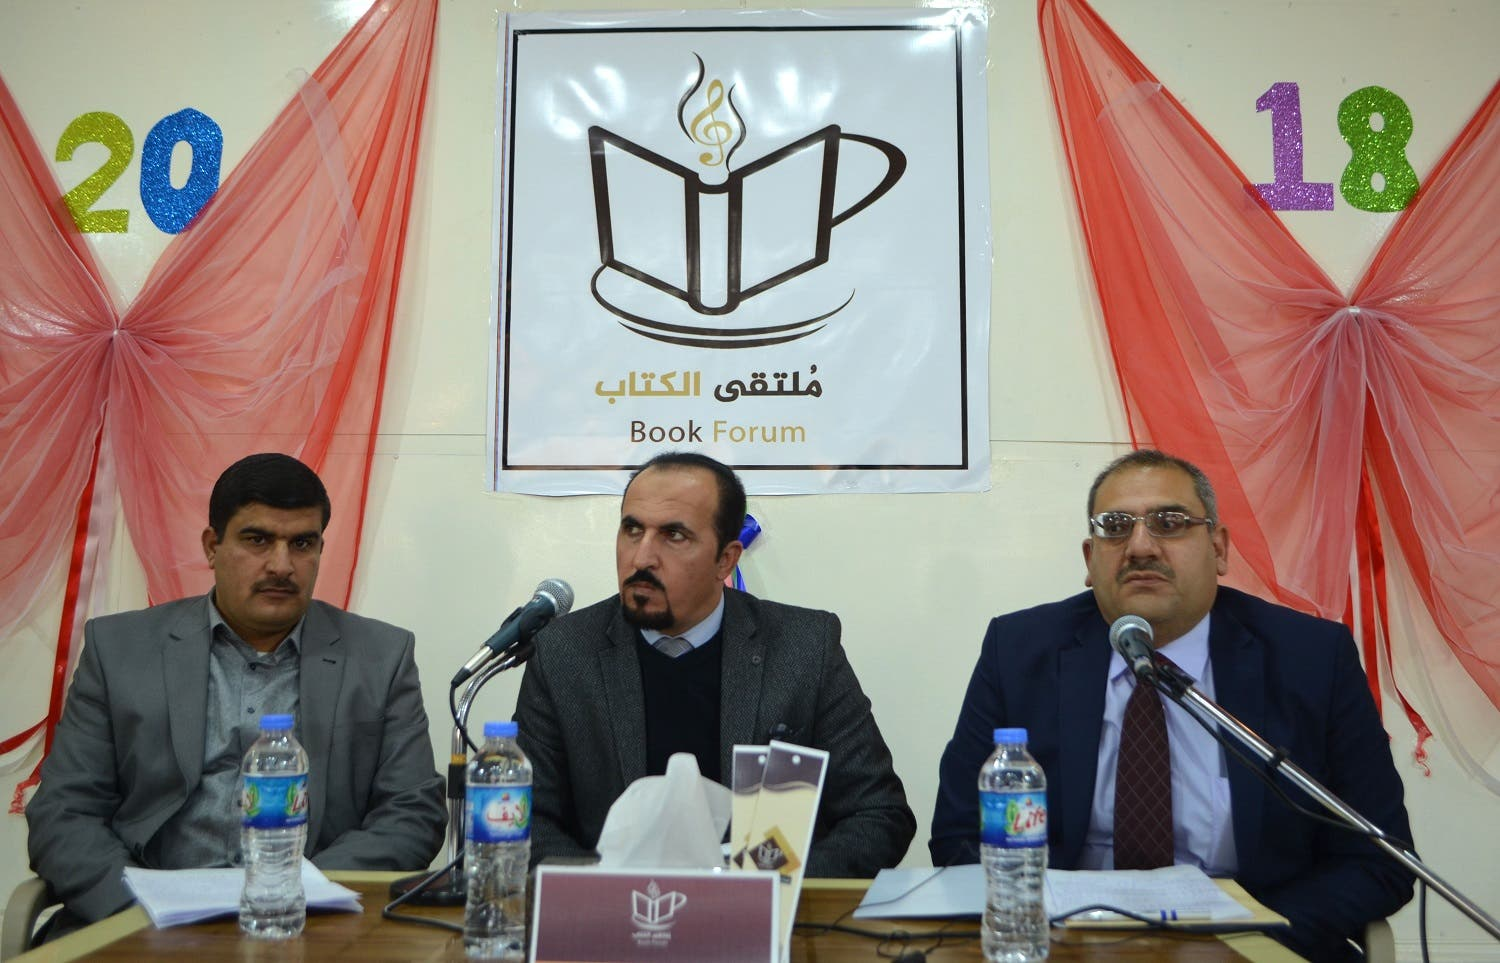 """Iraqis gather at a cultural café named """"Book Forum"""" in the former embattled city of Mosul on January 6, 2018. (AFP)"""